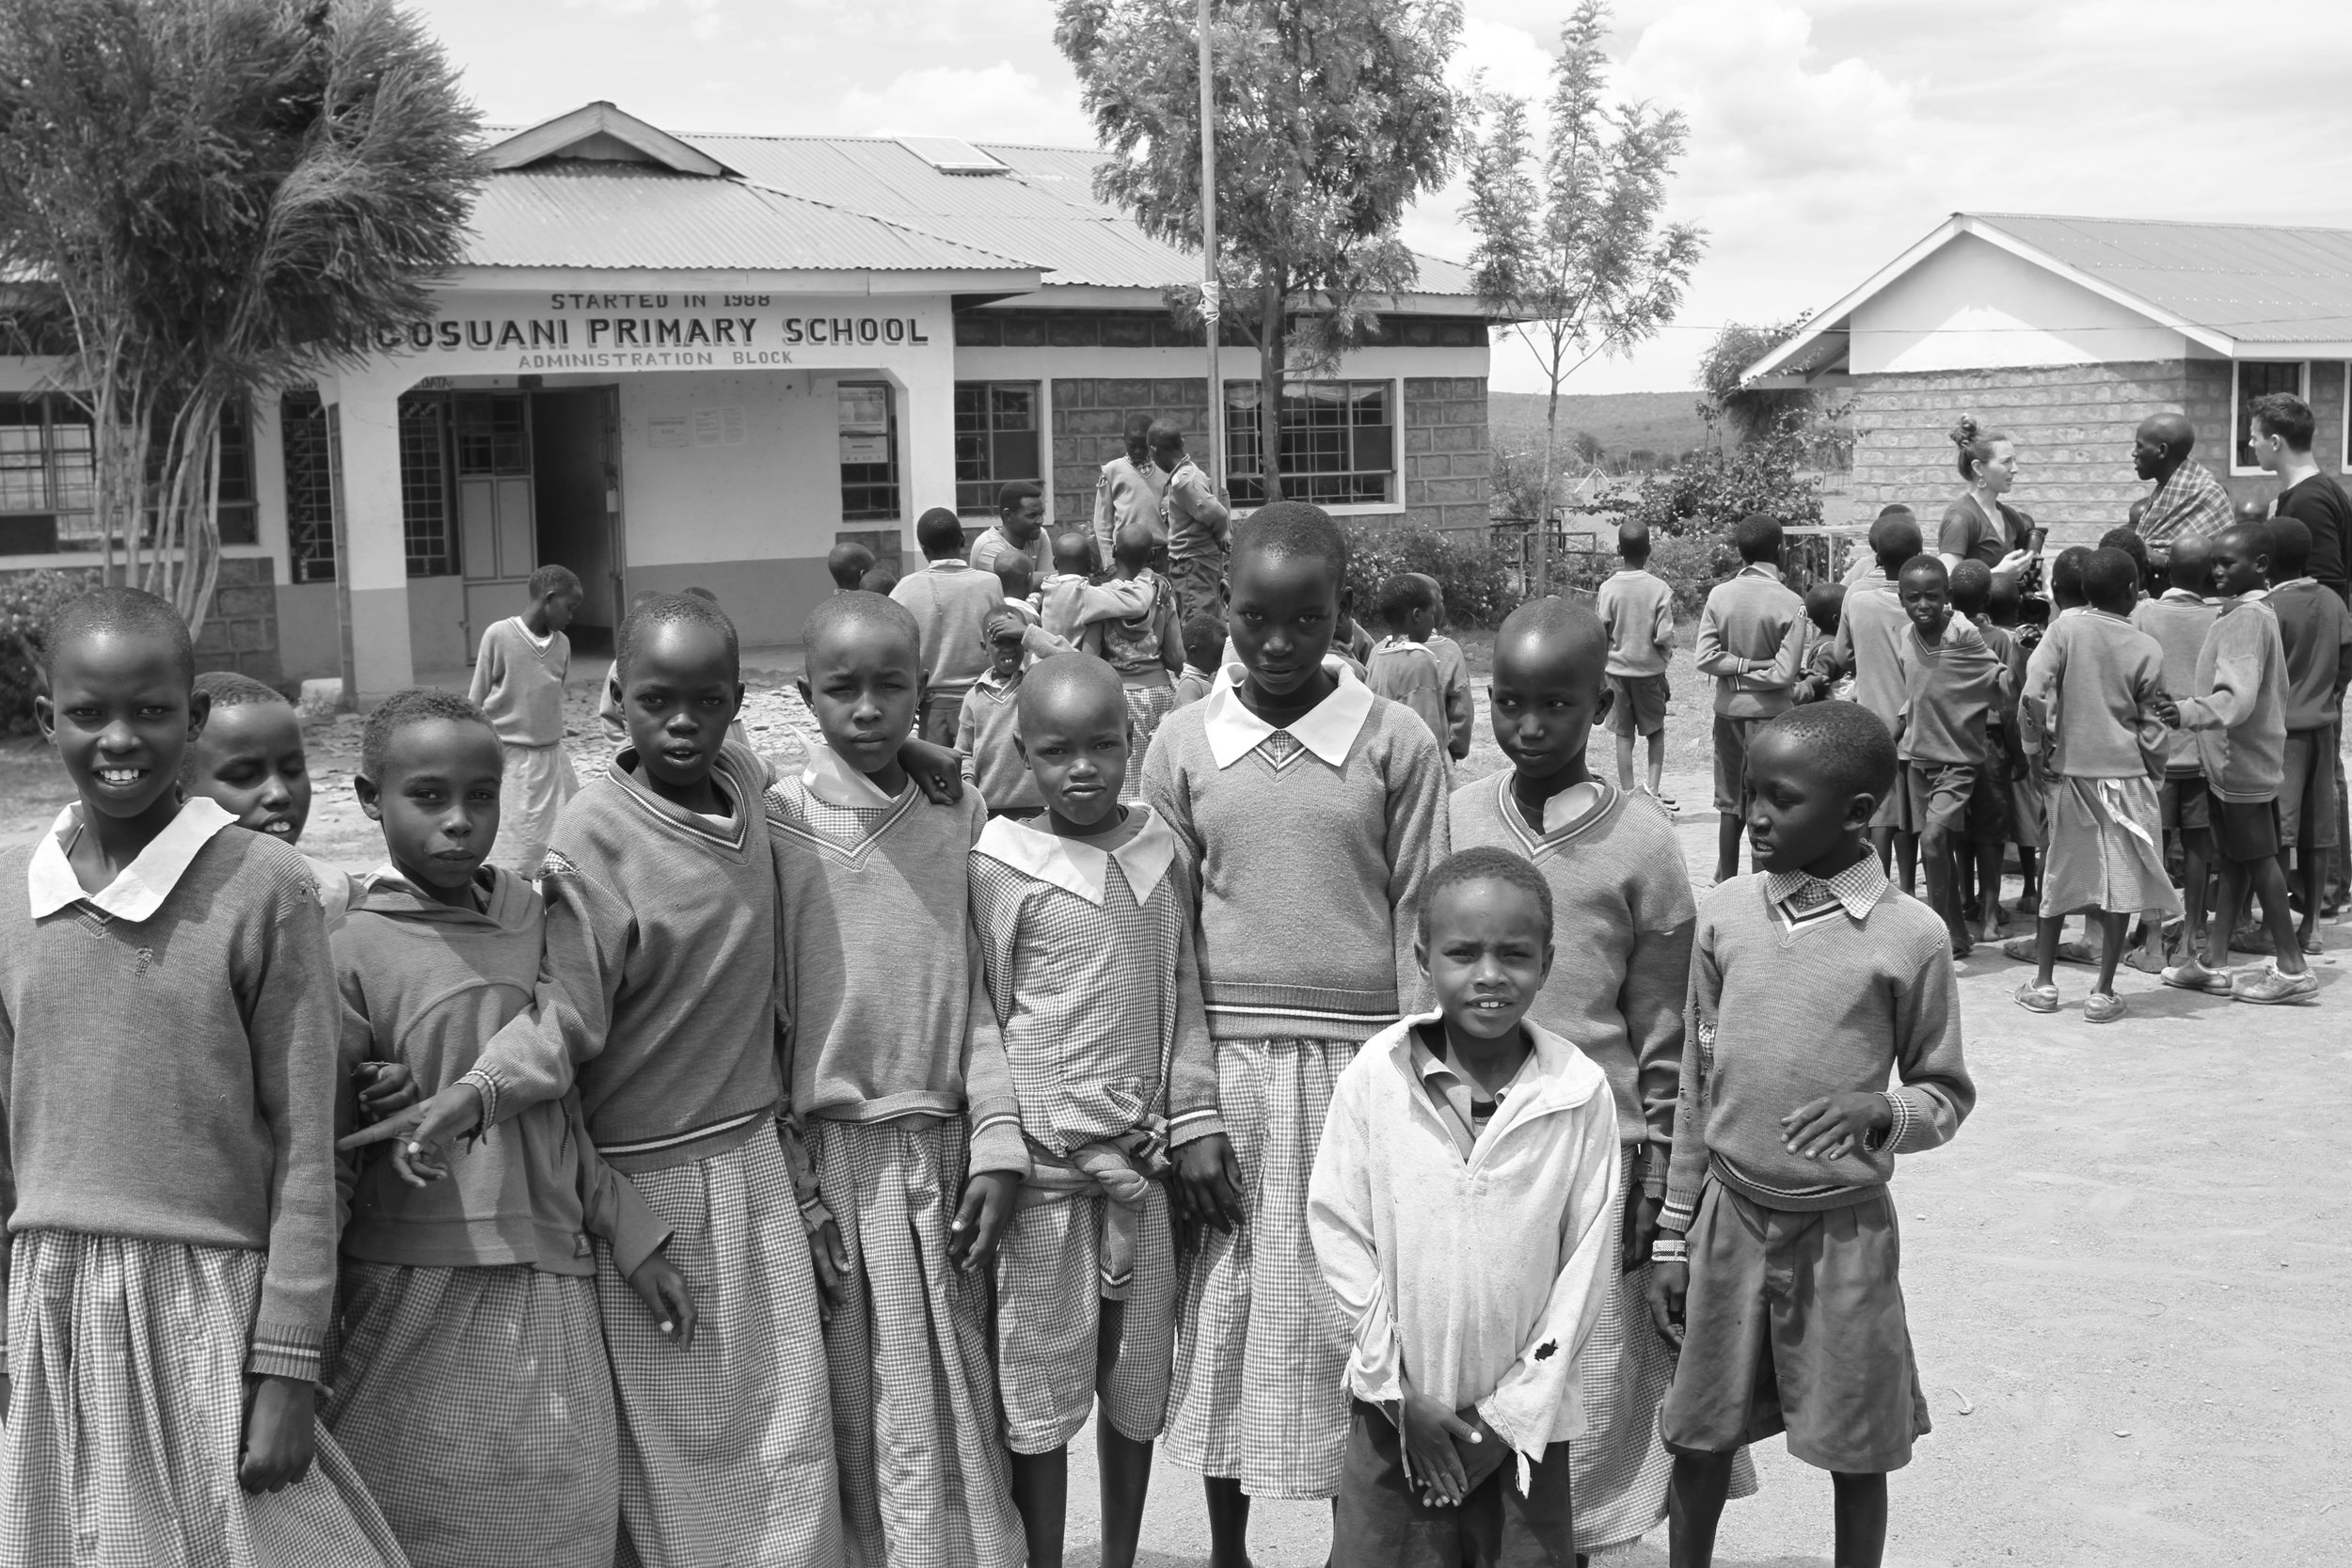 CHANGE HEROES - A philanthropic project to benefit the children of Ngosuani–a rural village of Kenya–in partnership with WE Charity.